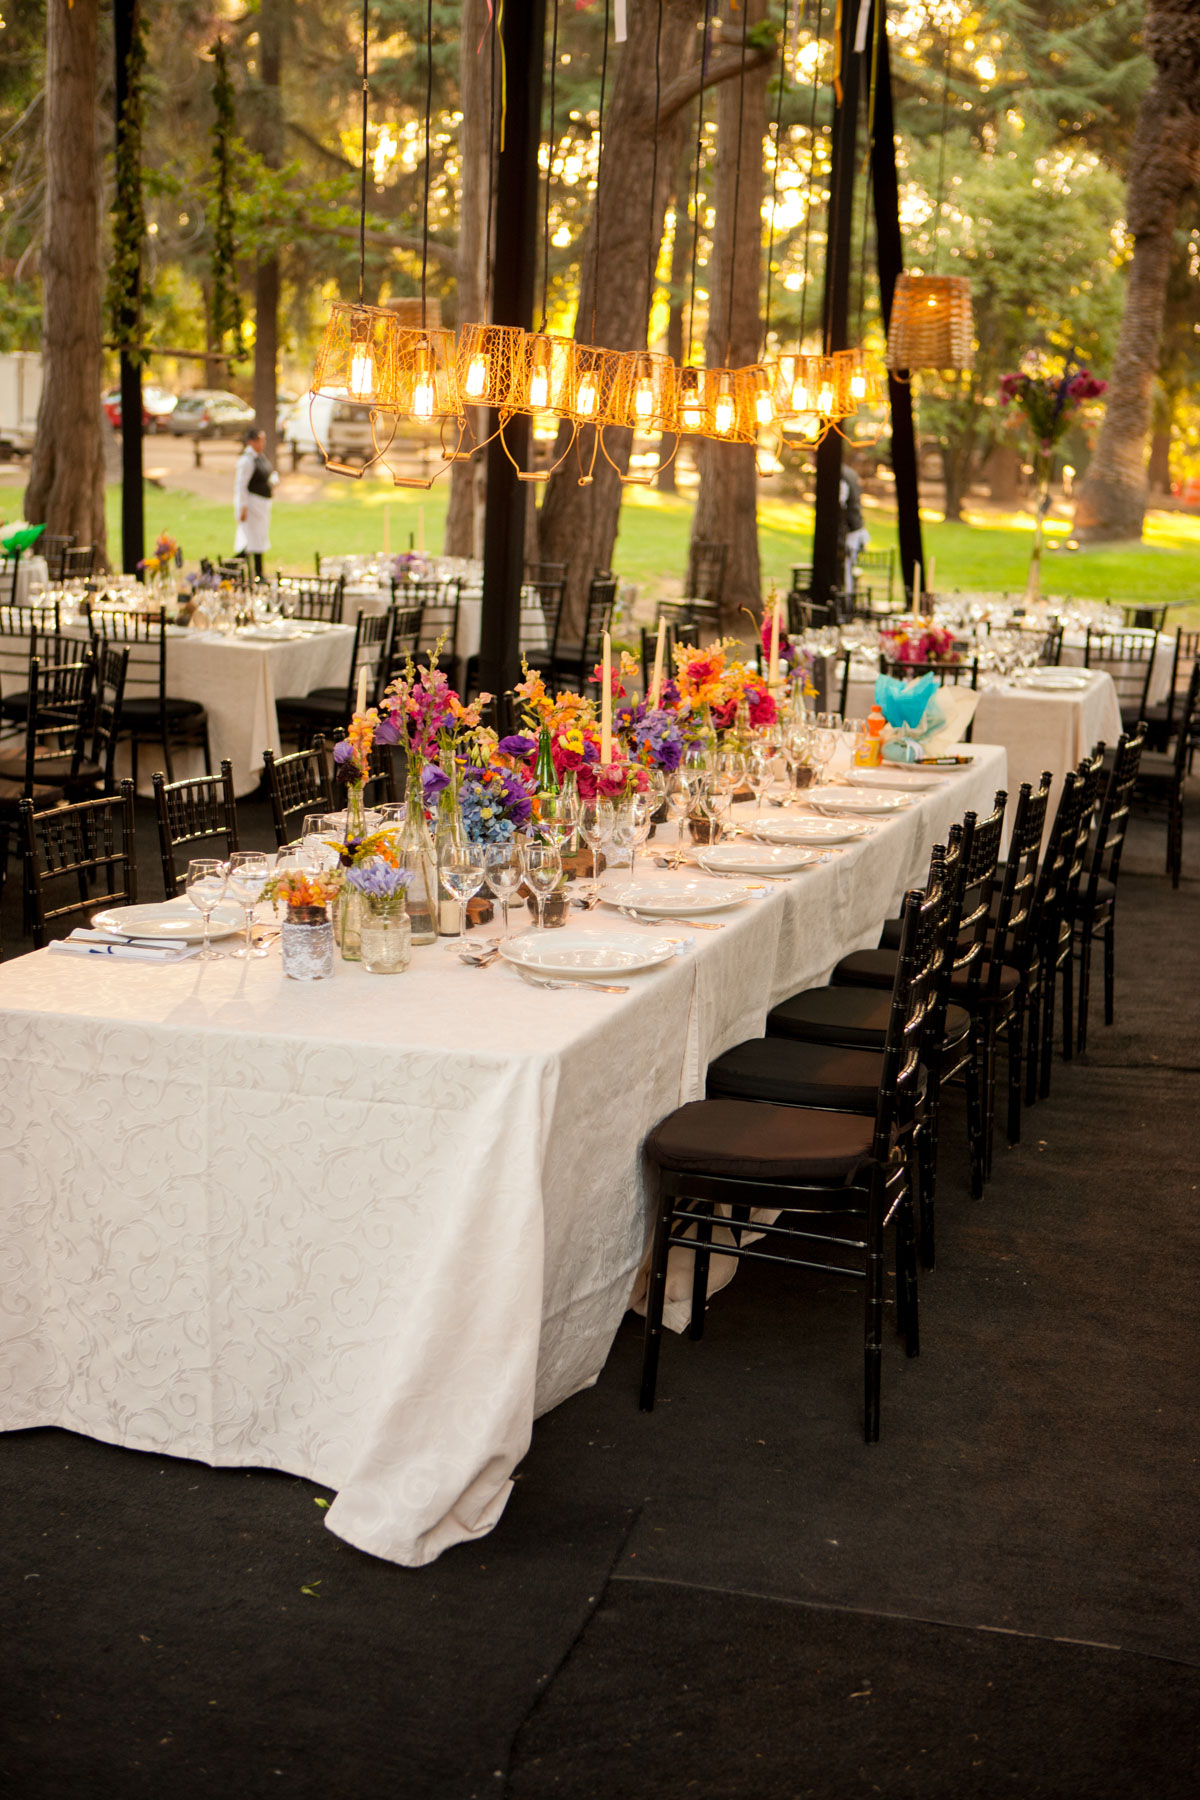 Beautiful-table-setting-000056021180_XXXLarge.jpg